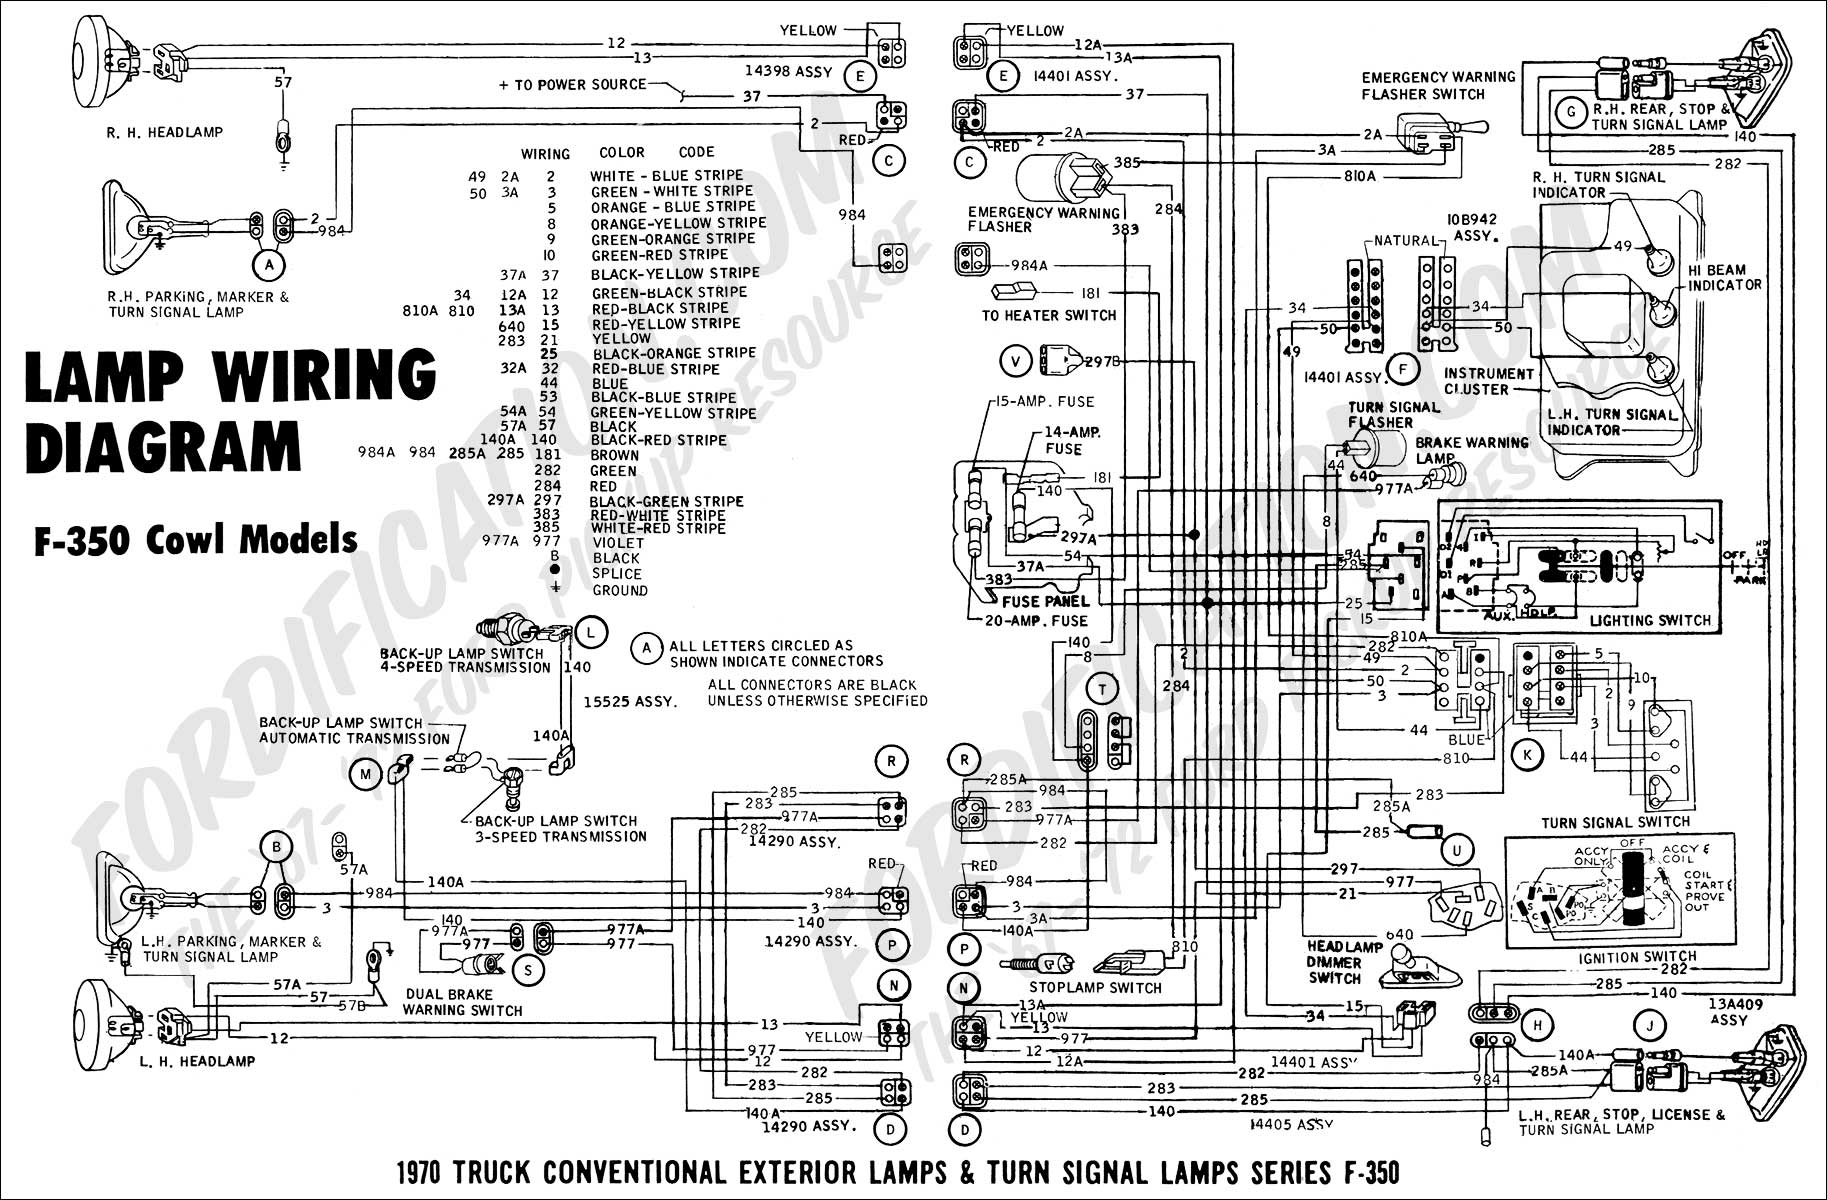 99 f350 headlight wiring diagram 2000 honda civic engine 1999 ford f250 dome light switch autos post